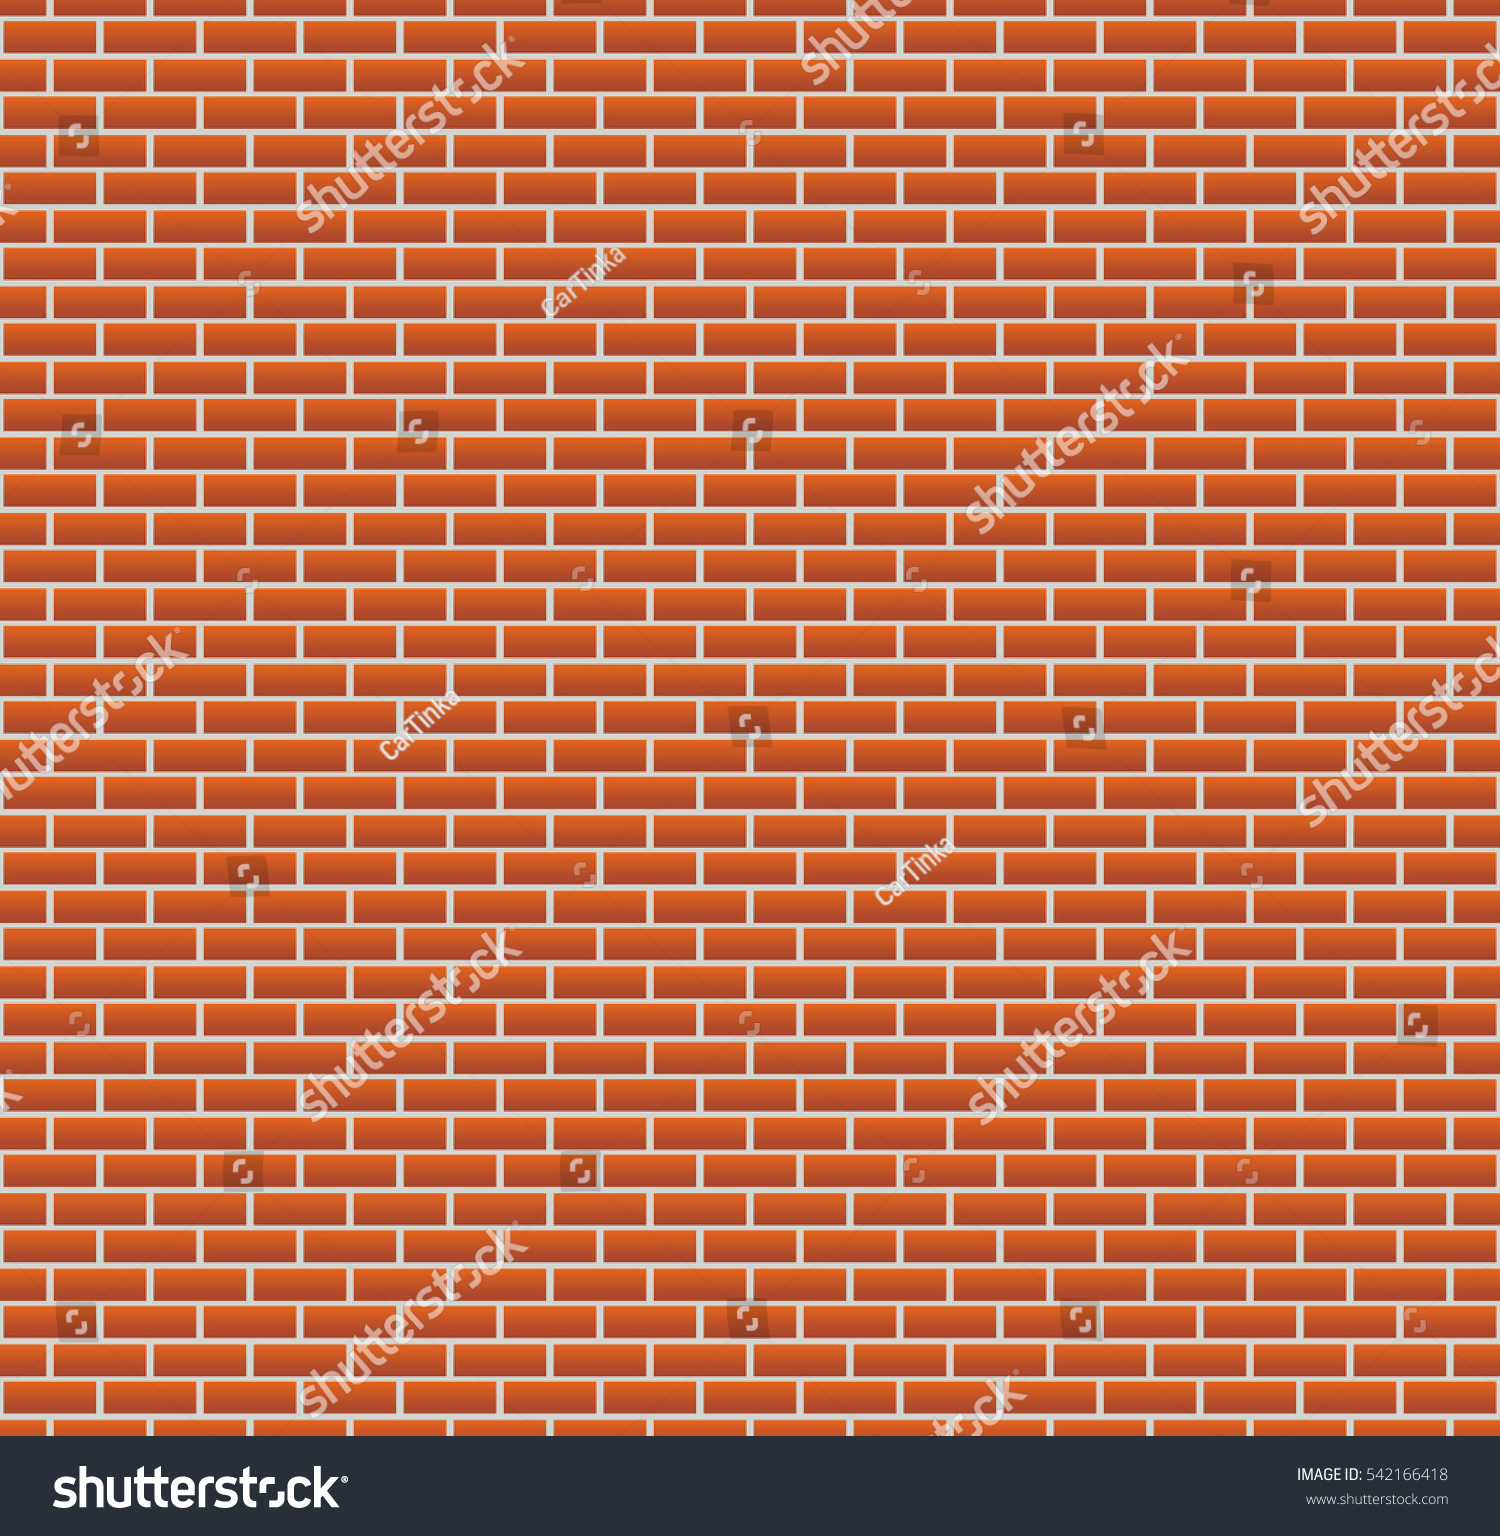 Background Red Brick Wall Seamless Wallpaper Stock Vector